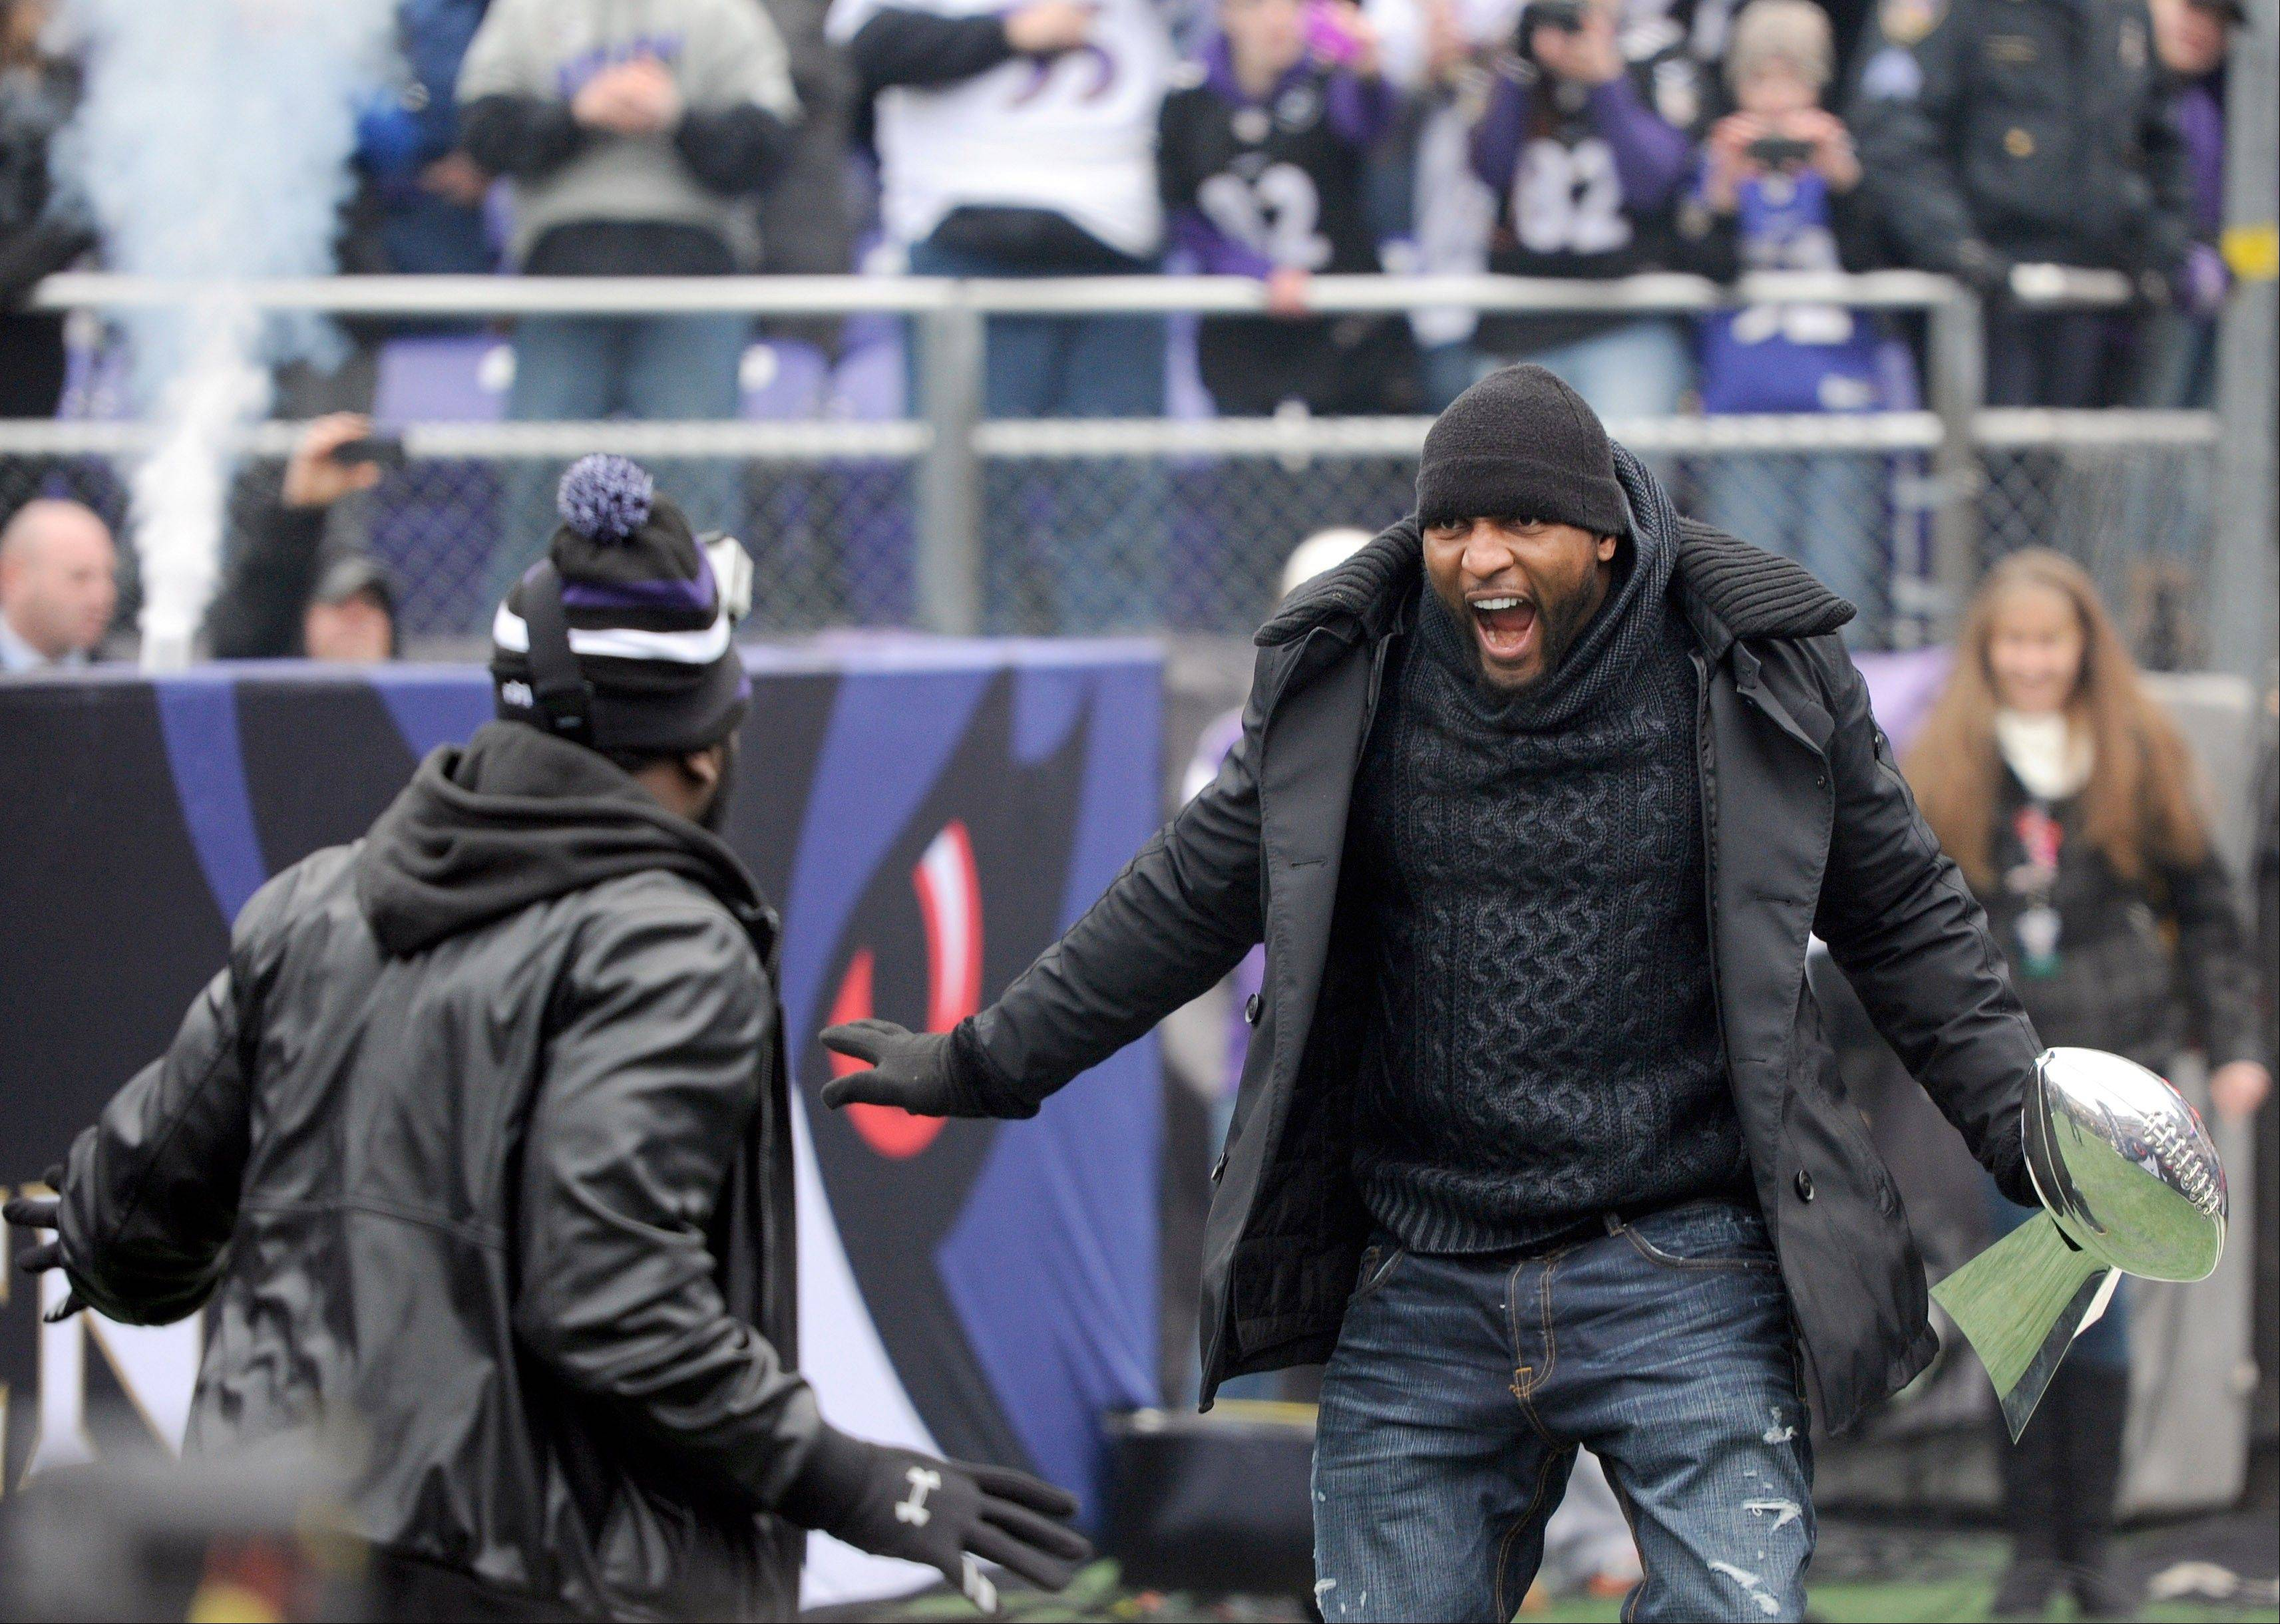 Baltimore Ravens linebacker Ray Lewis, right, and safety Ed Redd dance during a championship celebration at the team's stadium in Baltimore, Tuesday, Feb. 5, 2013. The Ravens defeated the San Francisco 49ers in NFL football's Super Bowl XLVII 34-31 on Sunday. (AP Photo/Steve Ruark)